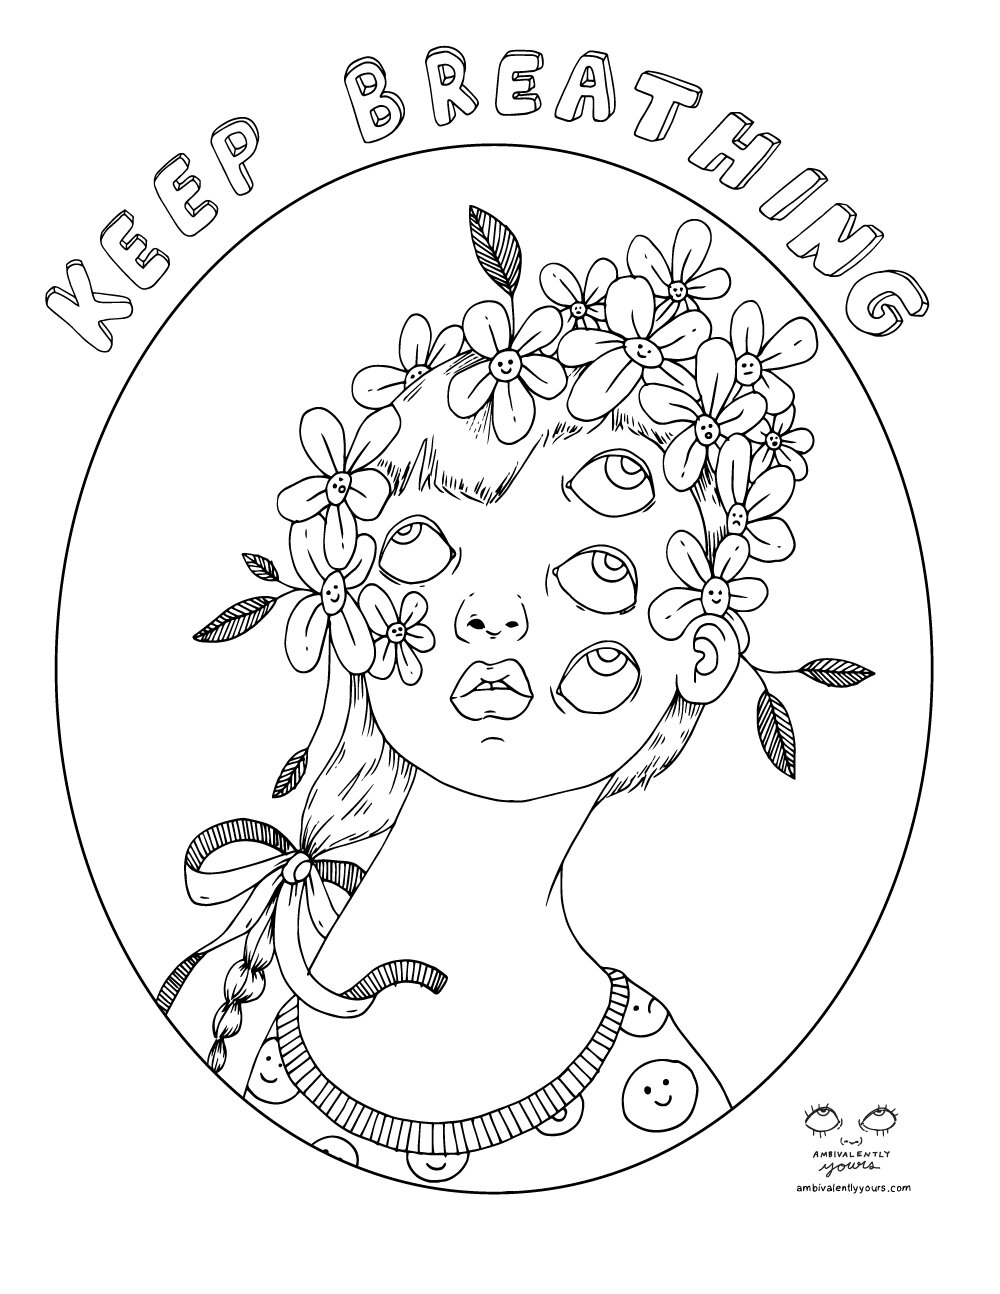 Colouring Pages Ambivalently Yours